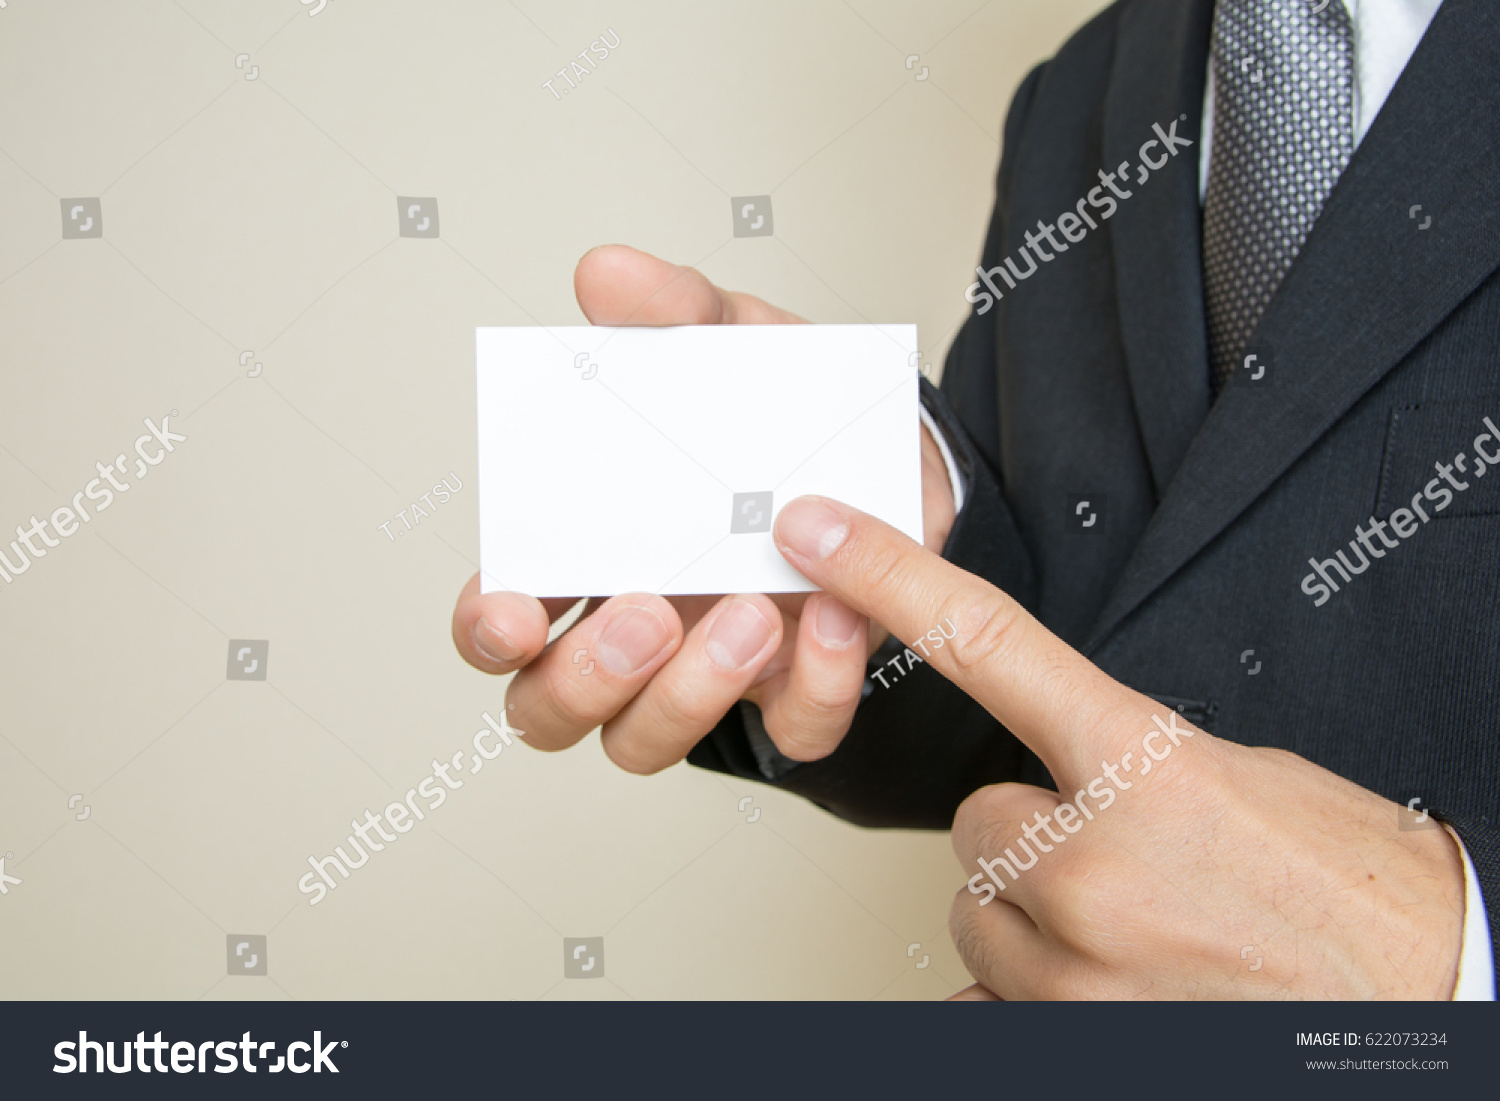 Men Who Exchange Business Cards Stock Photo (Safe to Use) 622073234 ...